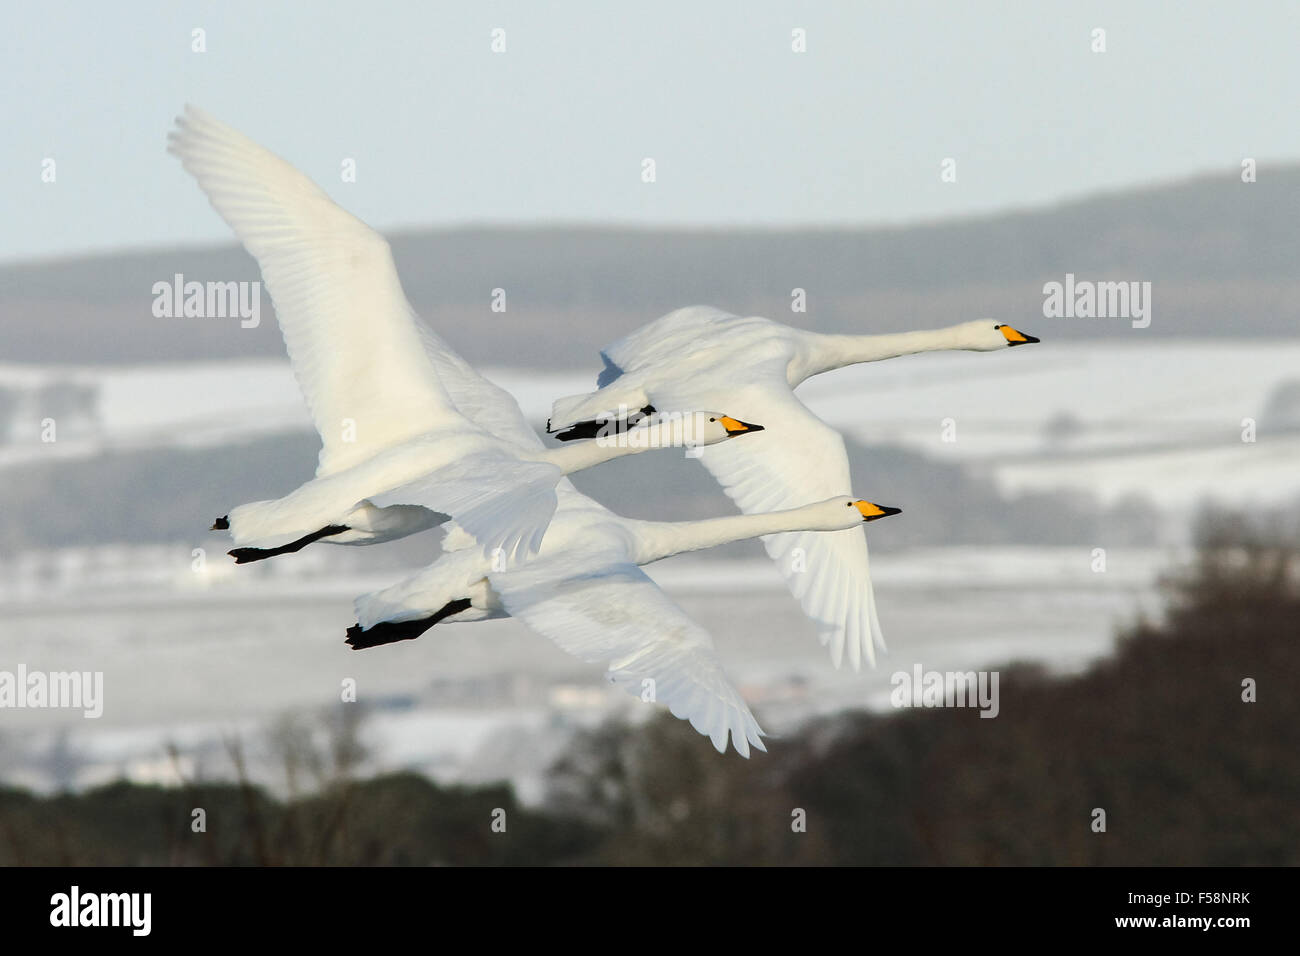 Three whooper swans in flight during their migration from Iceland to Scotland against a snow clad background - Stock Image